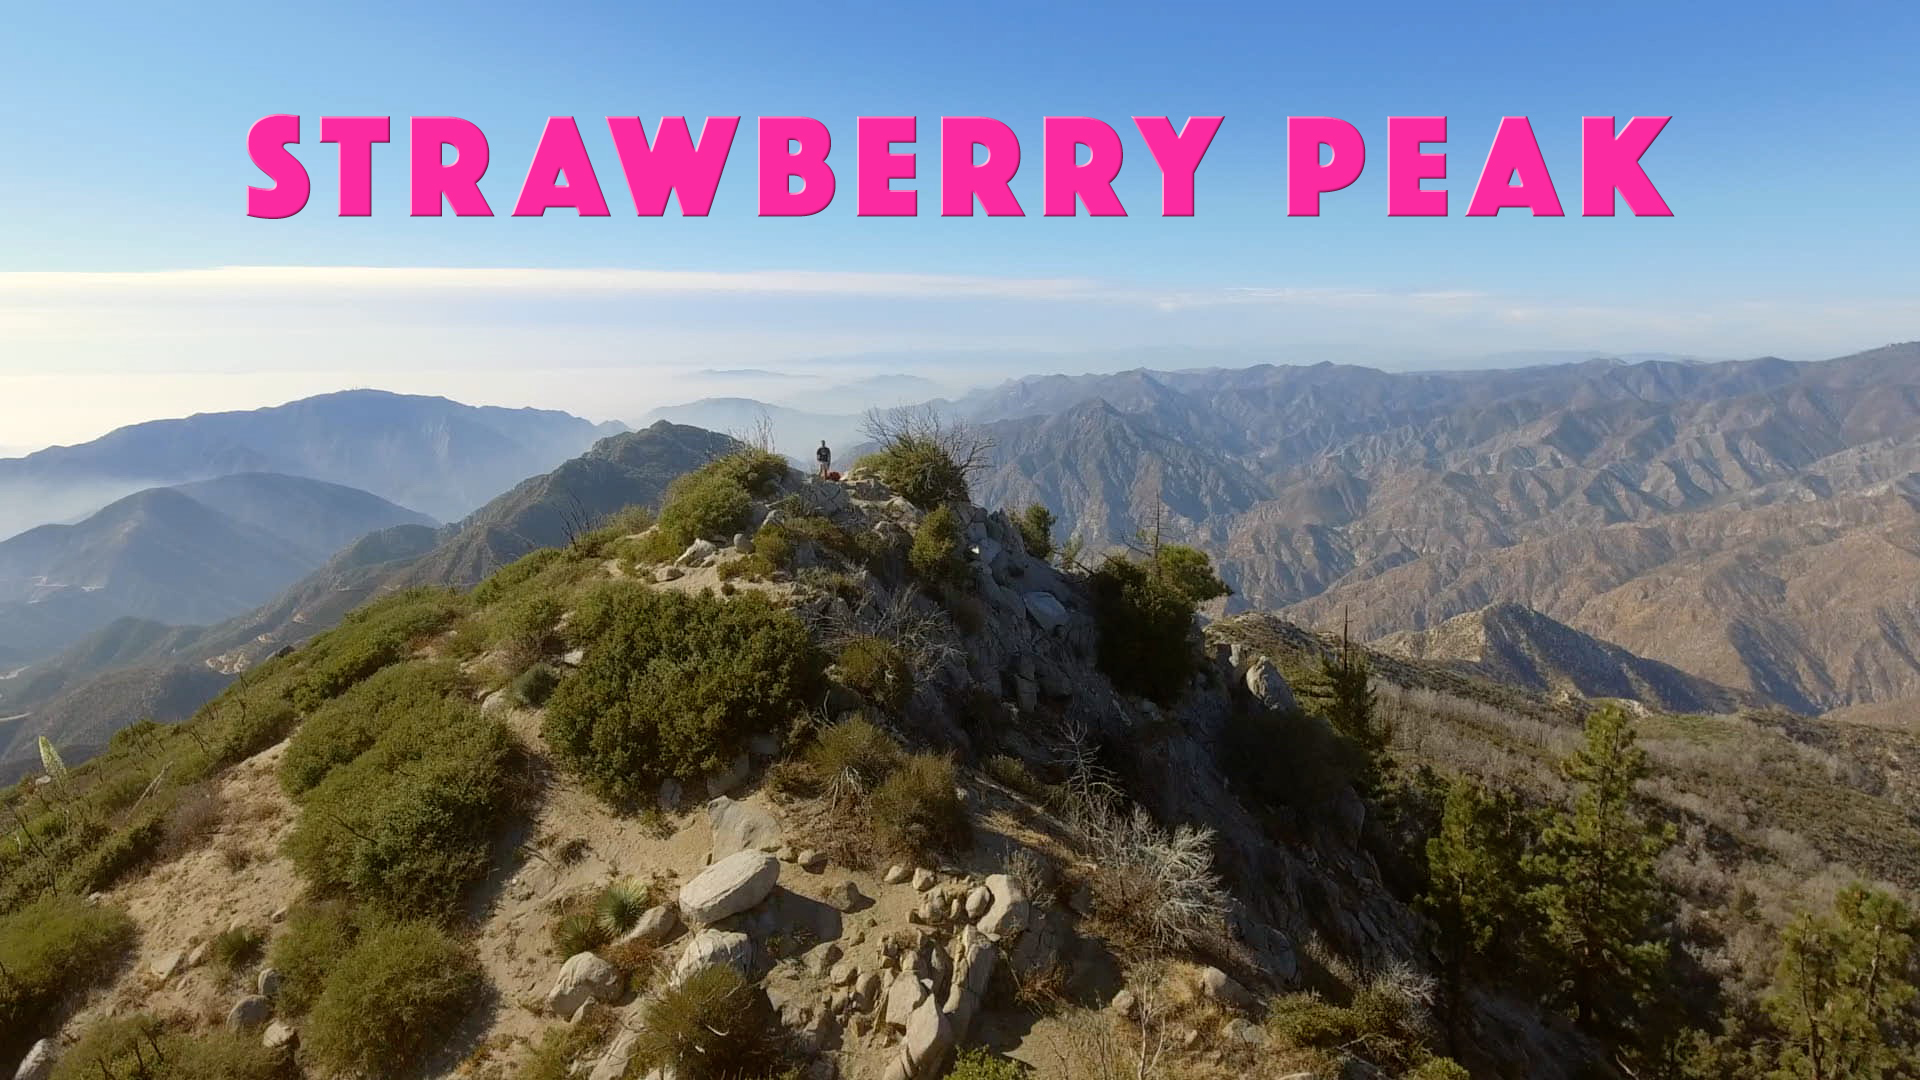 Hiking to the top of Strawberry Peak